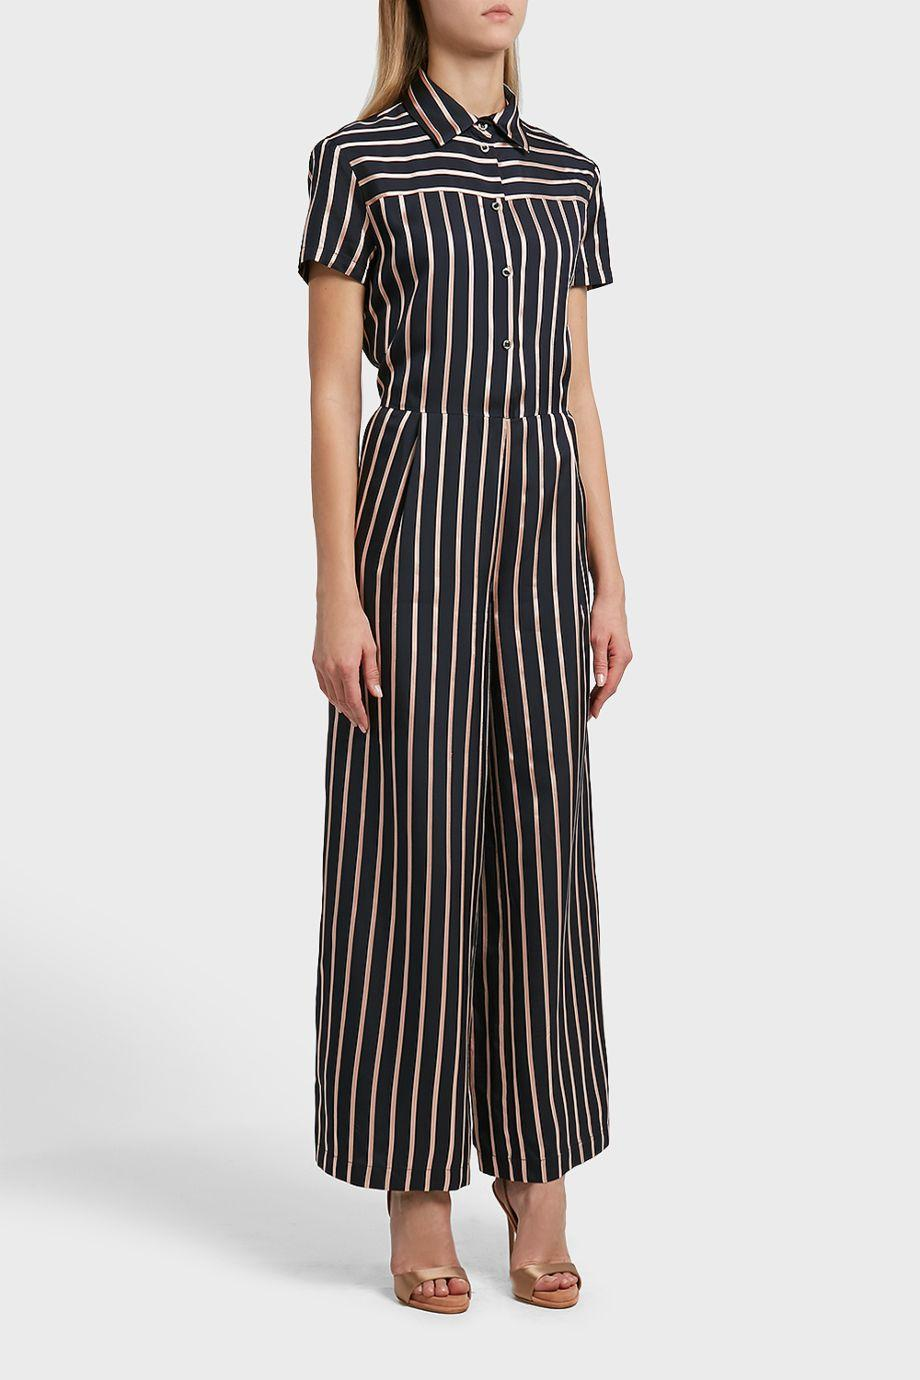 Paul & Joe Sister Eliott Striped Jumpsuit